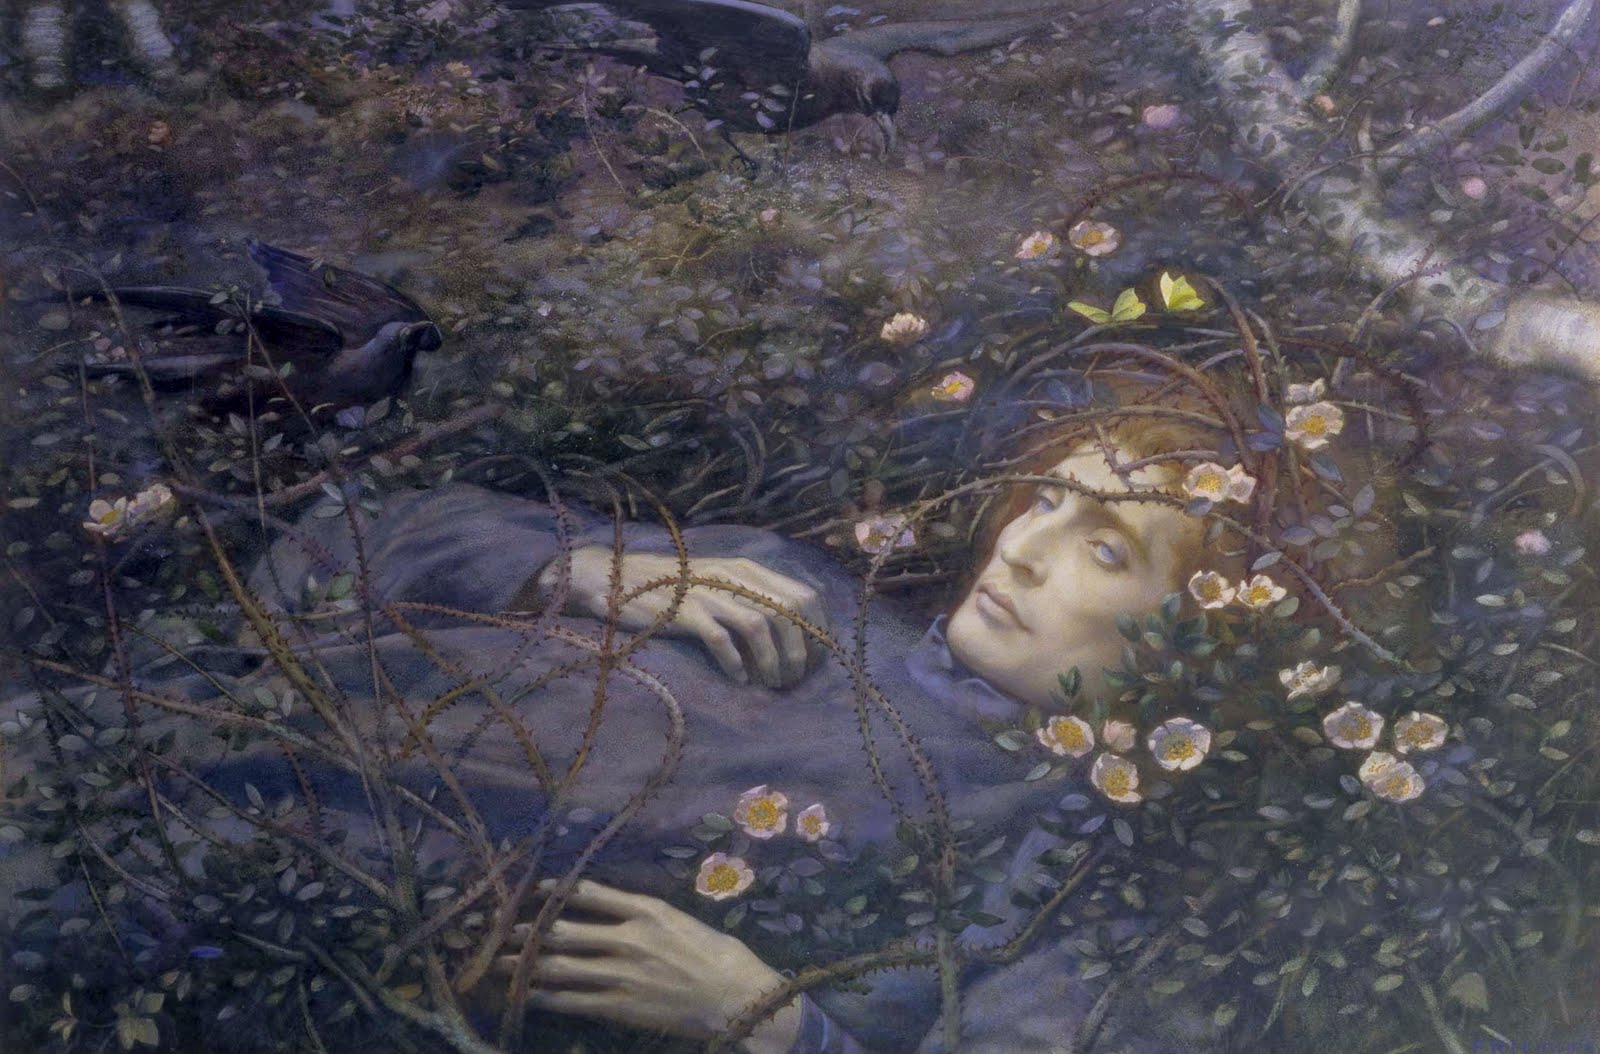 Free Download Pre Raphaelite Wallpaper 1600x1054 For Your